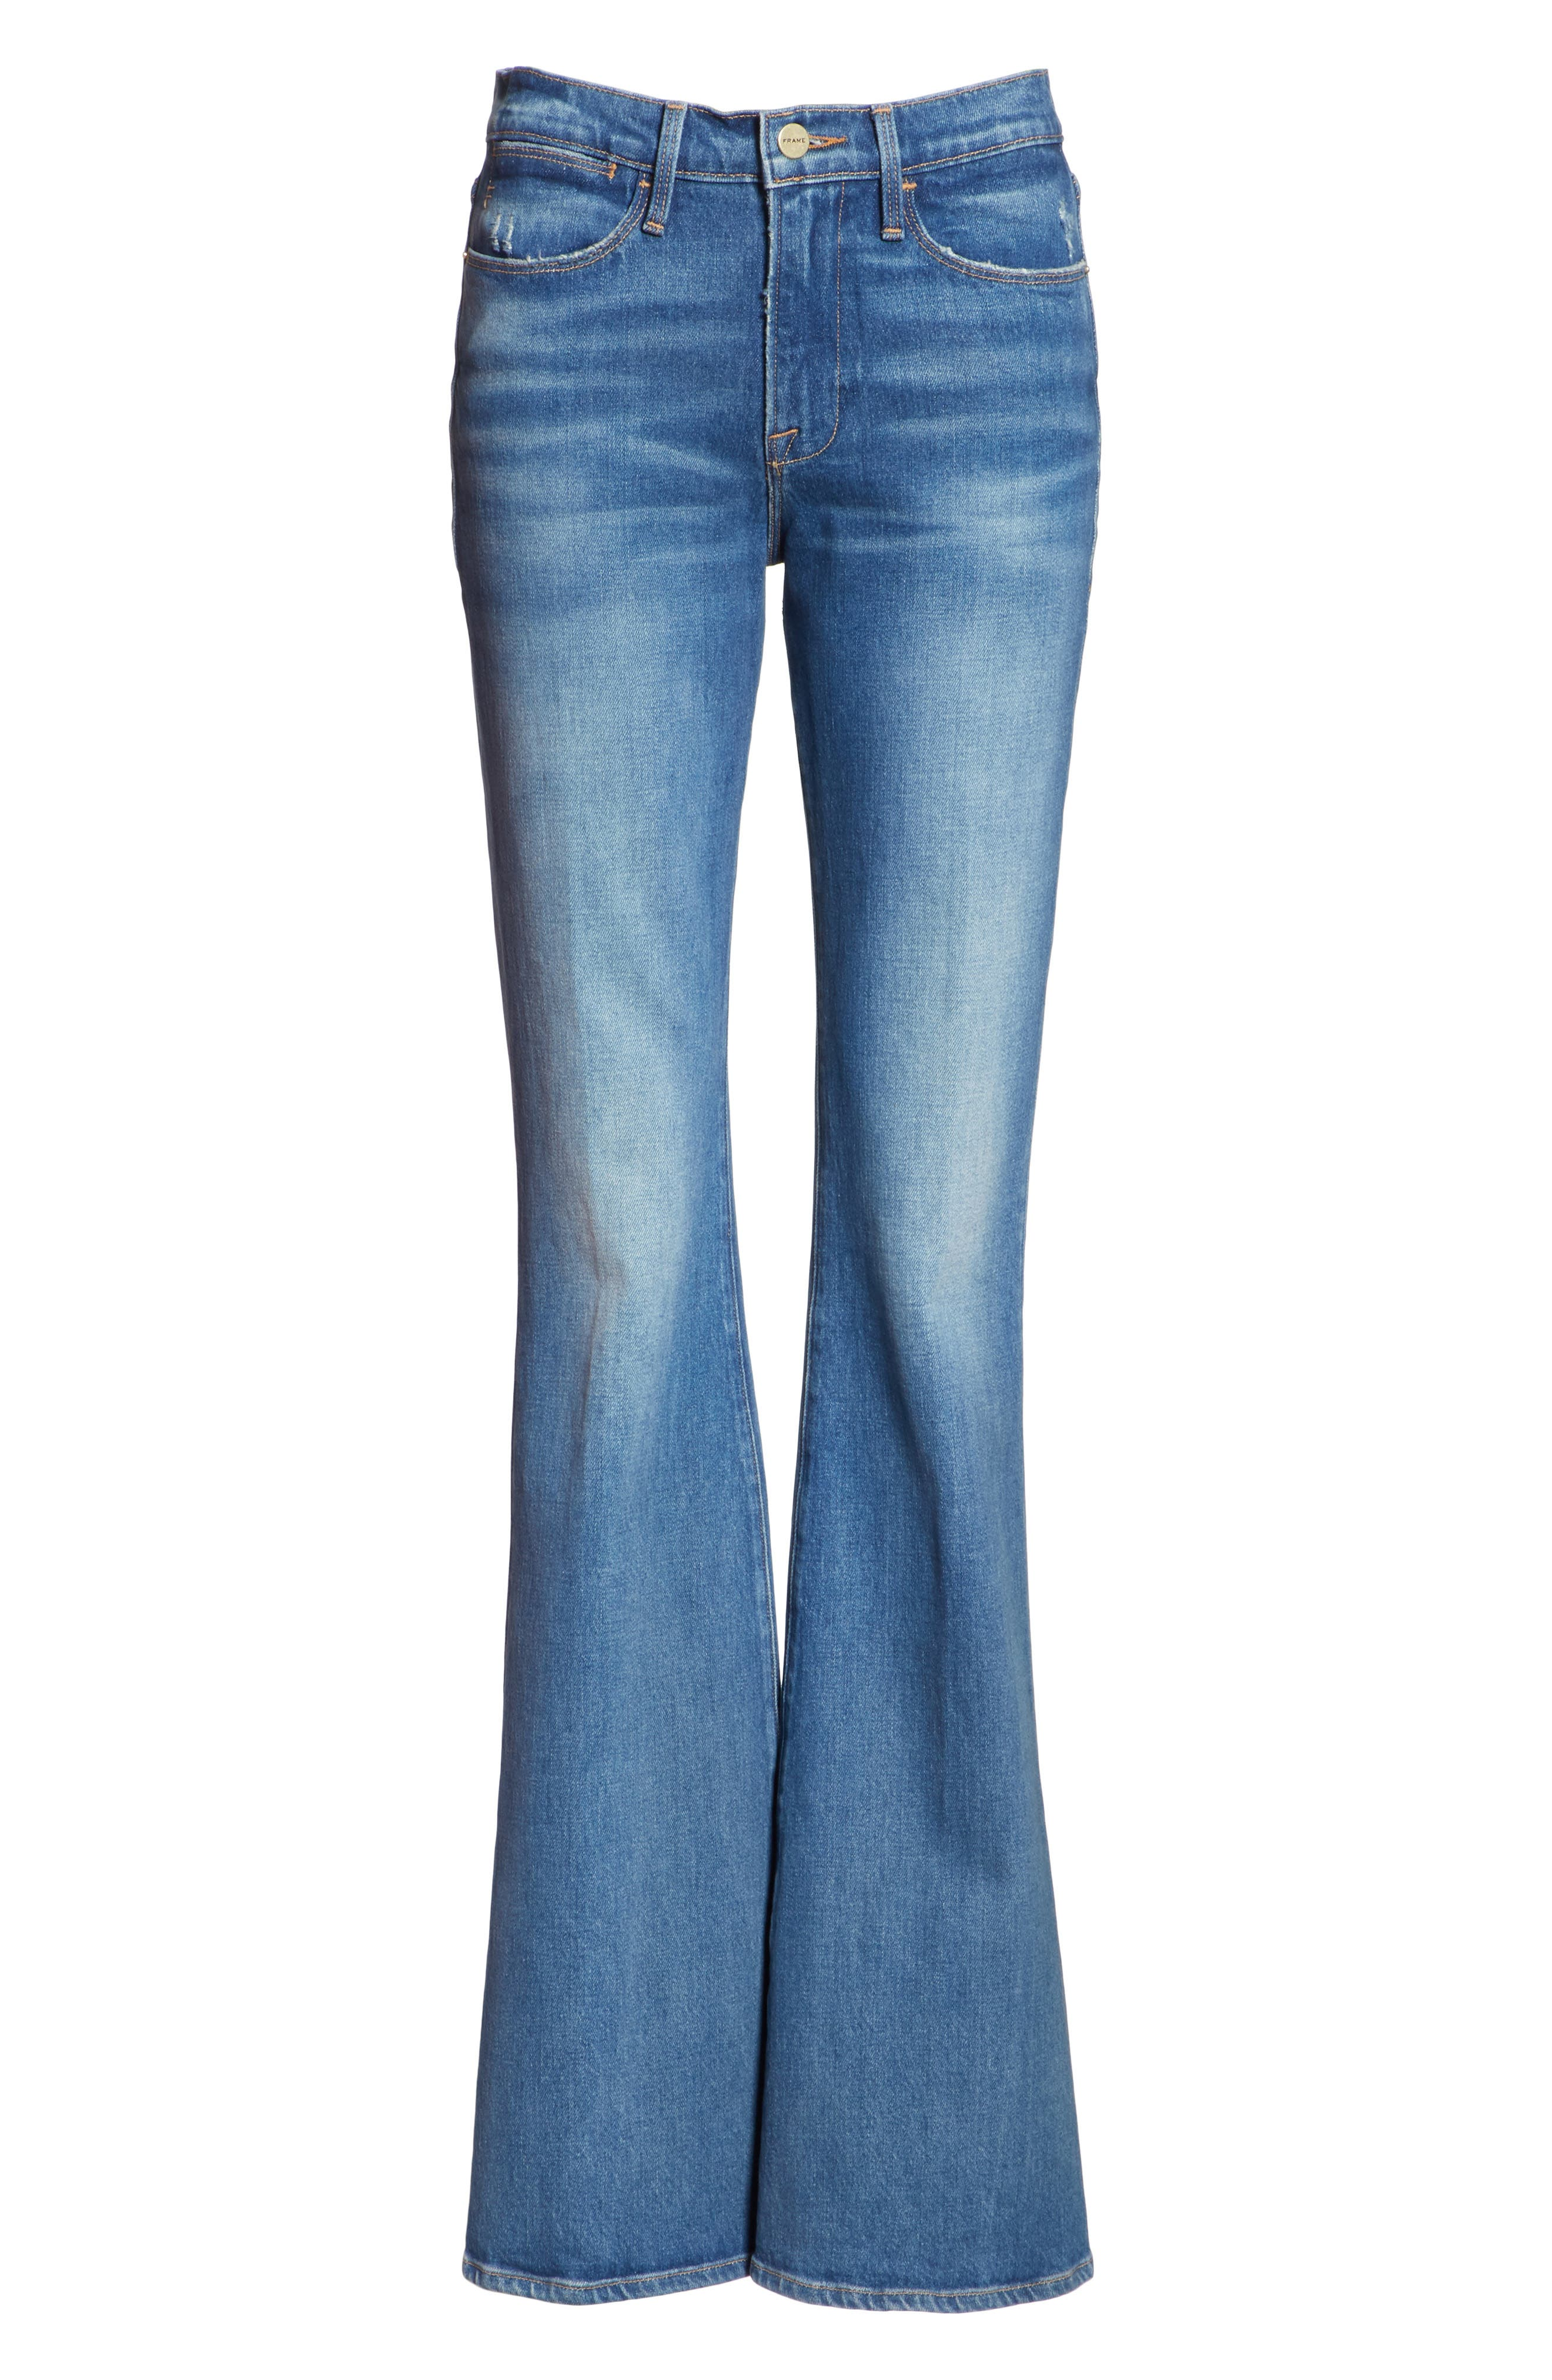 Le High Flare Jeans,                             Alternate thumbnail 7, color,                             CLAPPS